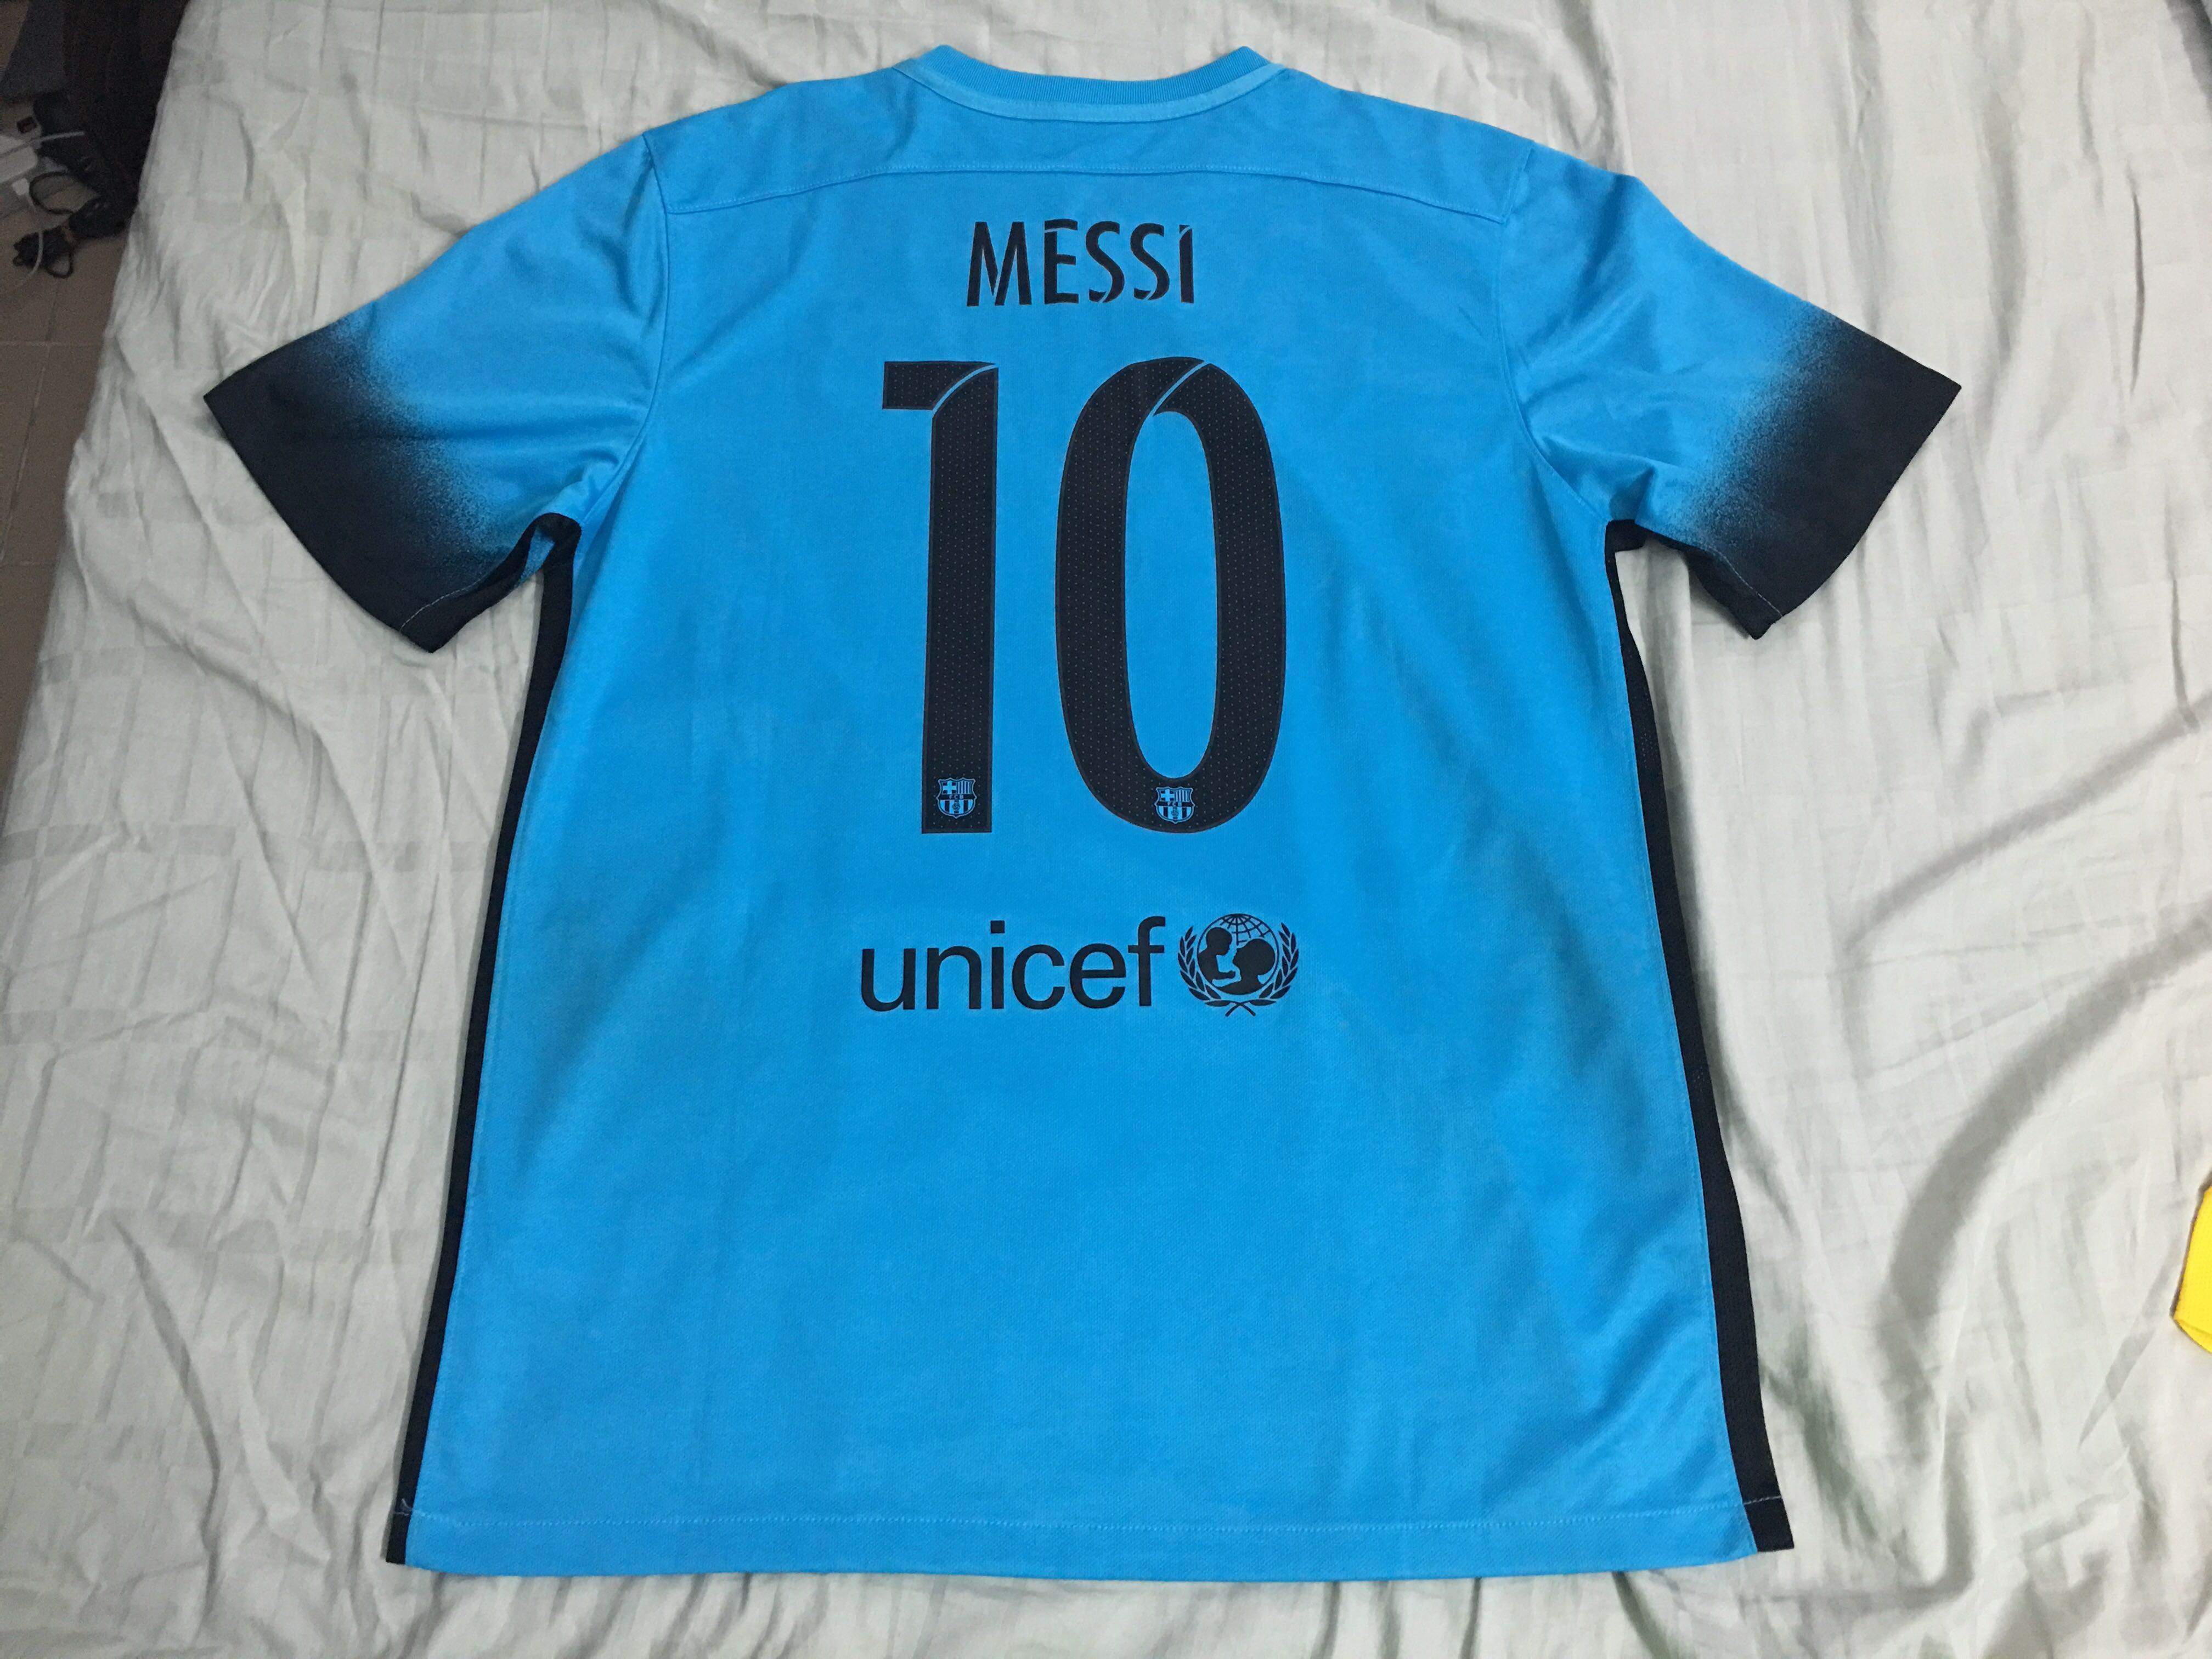 098aef3ac78 Authentic Barcelona 15/16 third jersey MESSI 10, Sports, Athletic ...